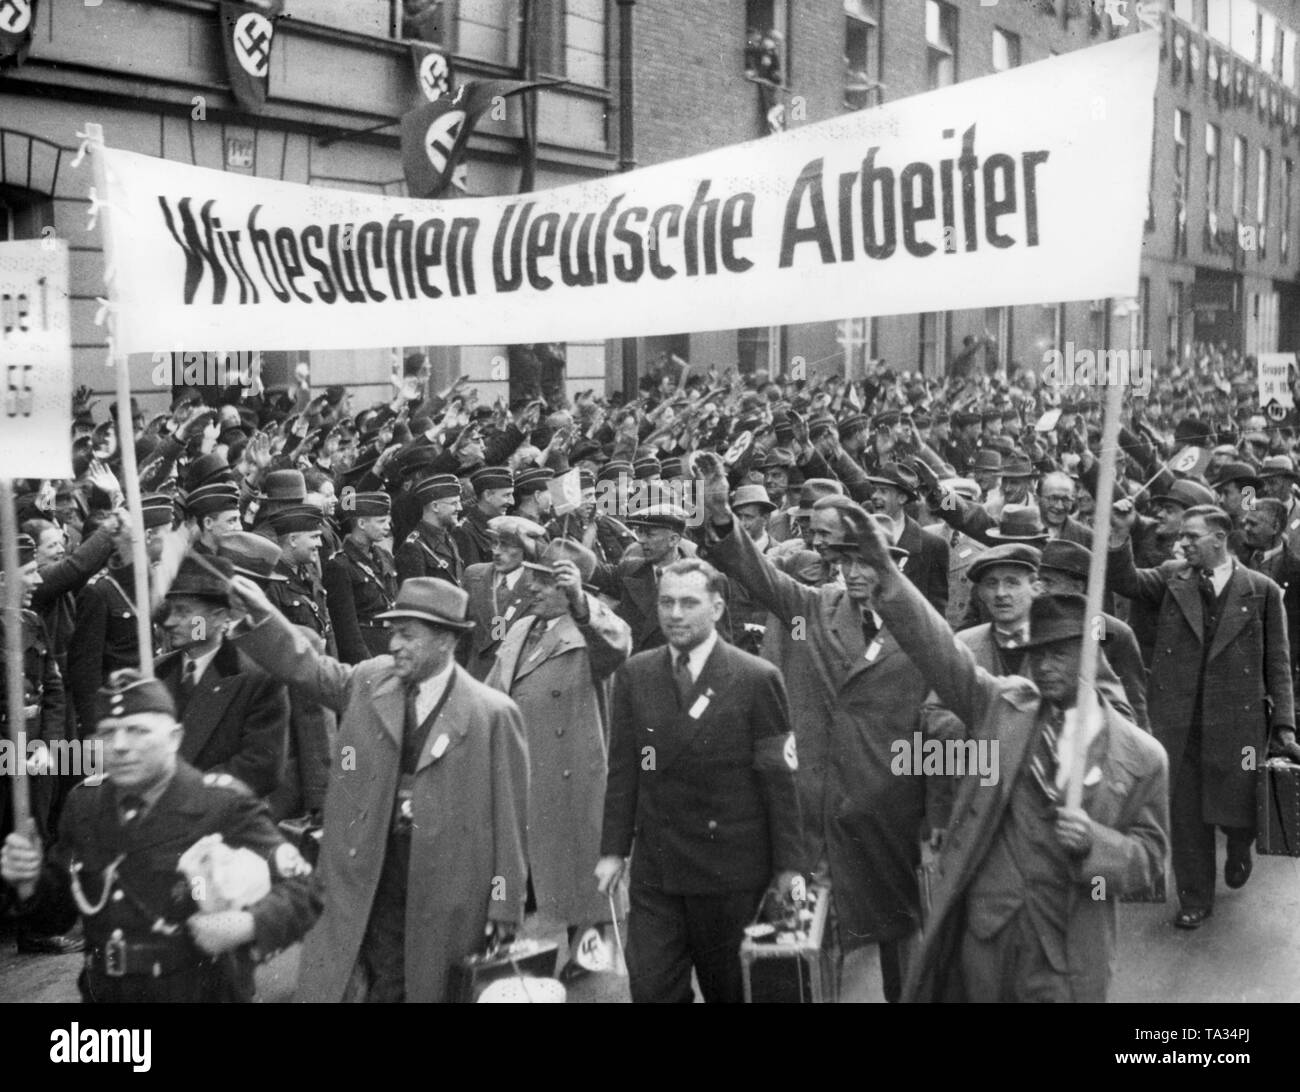 After the Anschluss of Austria, 2000 Viennese workers arrived with special trains at the Anhalter Bahnhof in Berlin for a trip organized by the Nazi organization 'Kraft durch Freude' ('Strength through Joy'). Here they are marching to their quarters. In the front, a banner with the inscription 'We are visiting German workers'. - Stock Image